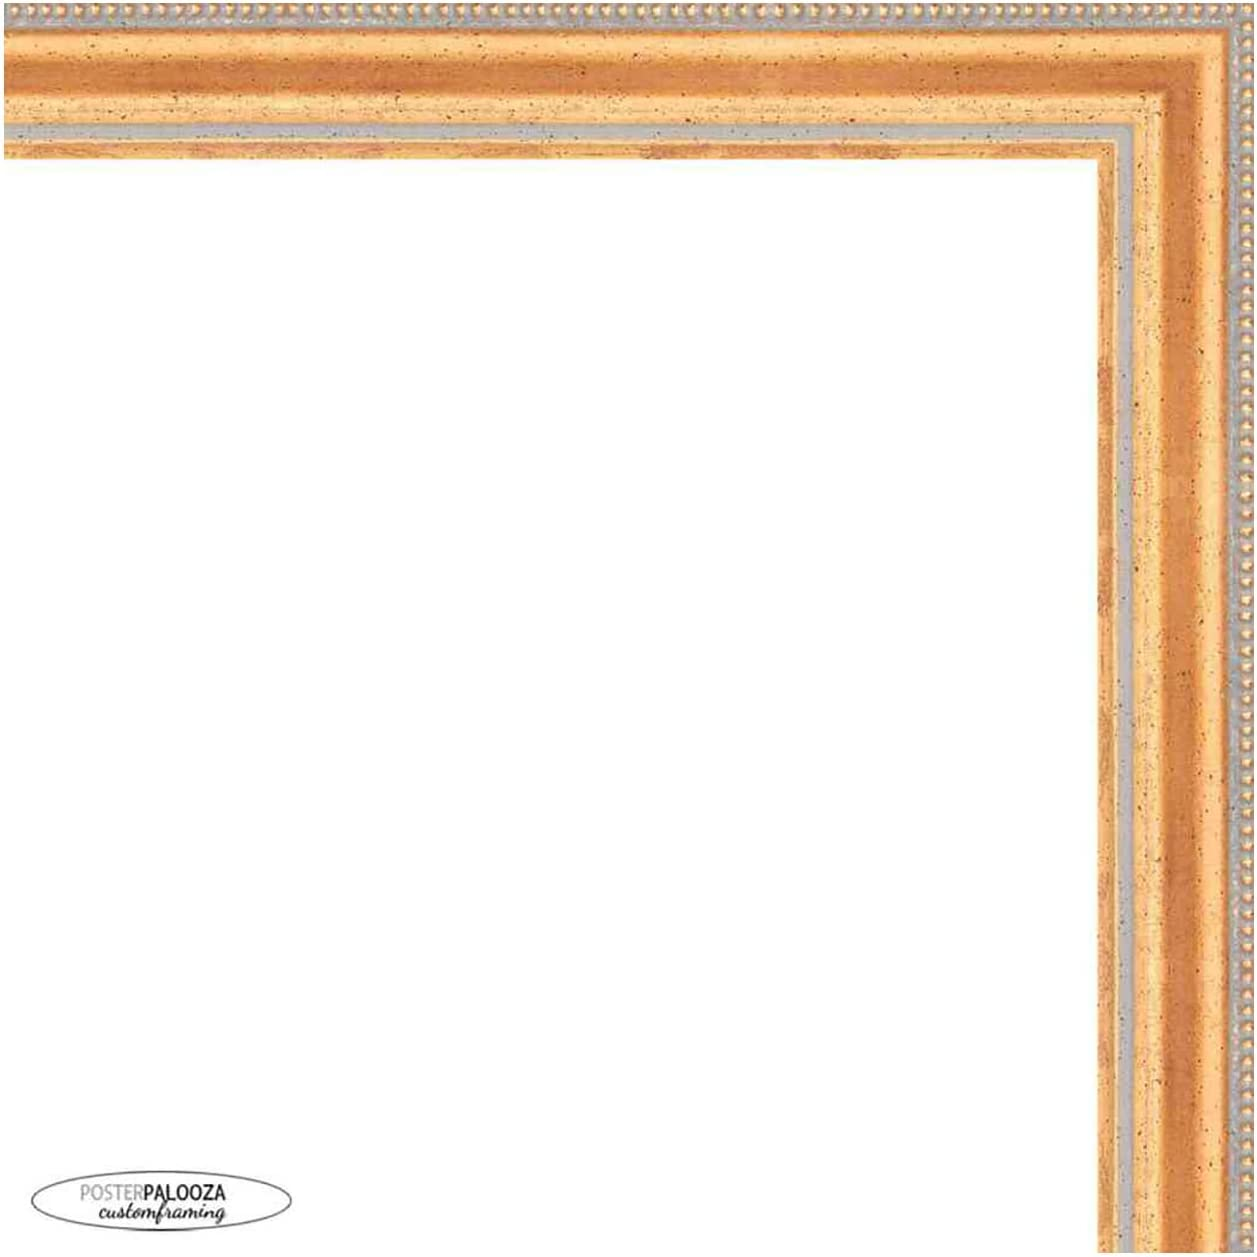 Poster Luxury Palooza 36x18 Traditional Gold Wood Complete Picture Fram Max 78% OFF